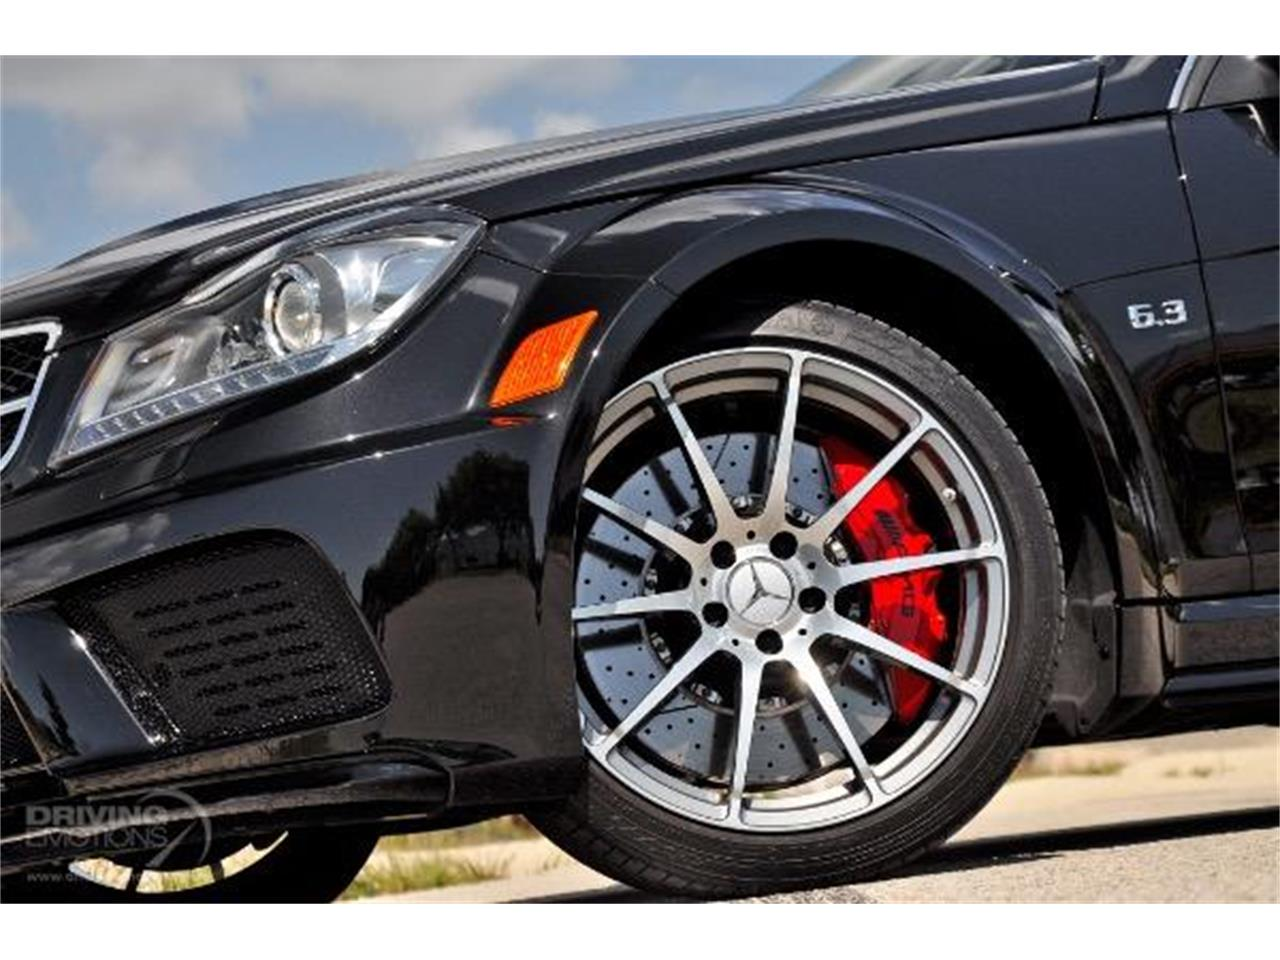 2013 Mercedes-Benz C63 AMG for sale in West Palm Beach, FL – photo 51